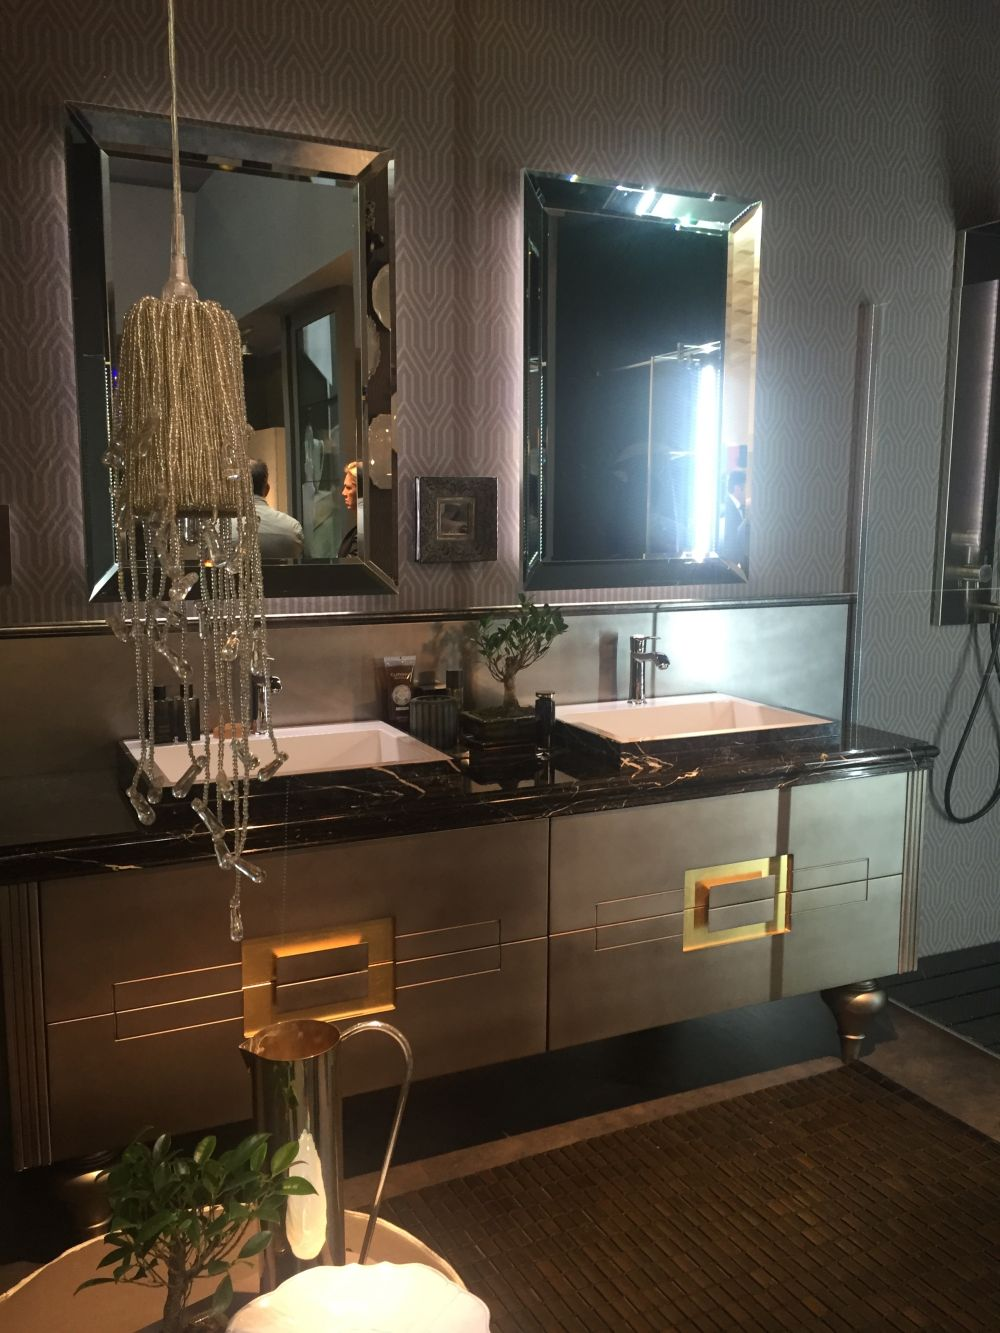 Backlit Mirrors - The Focal Points Of The Modern Bathrooms